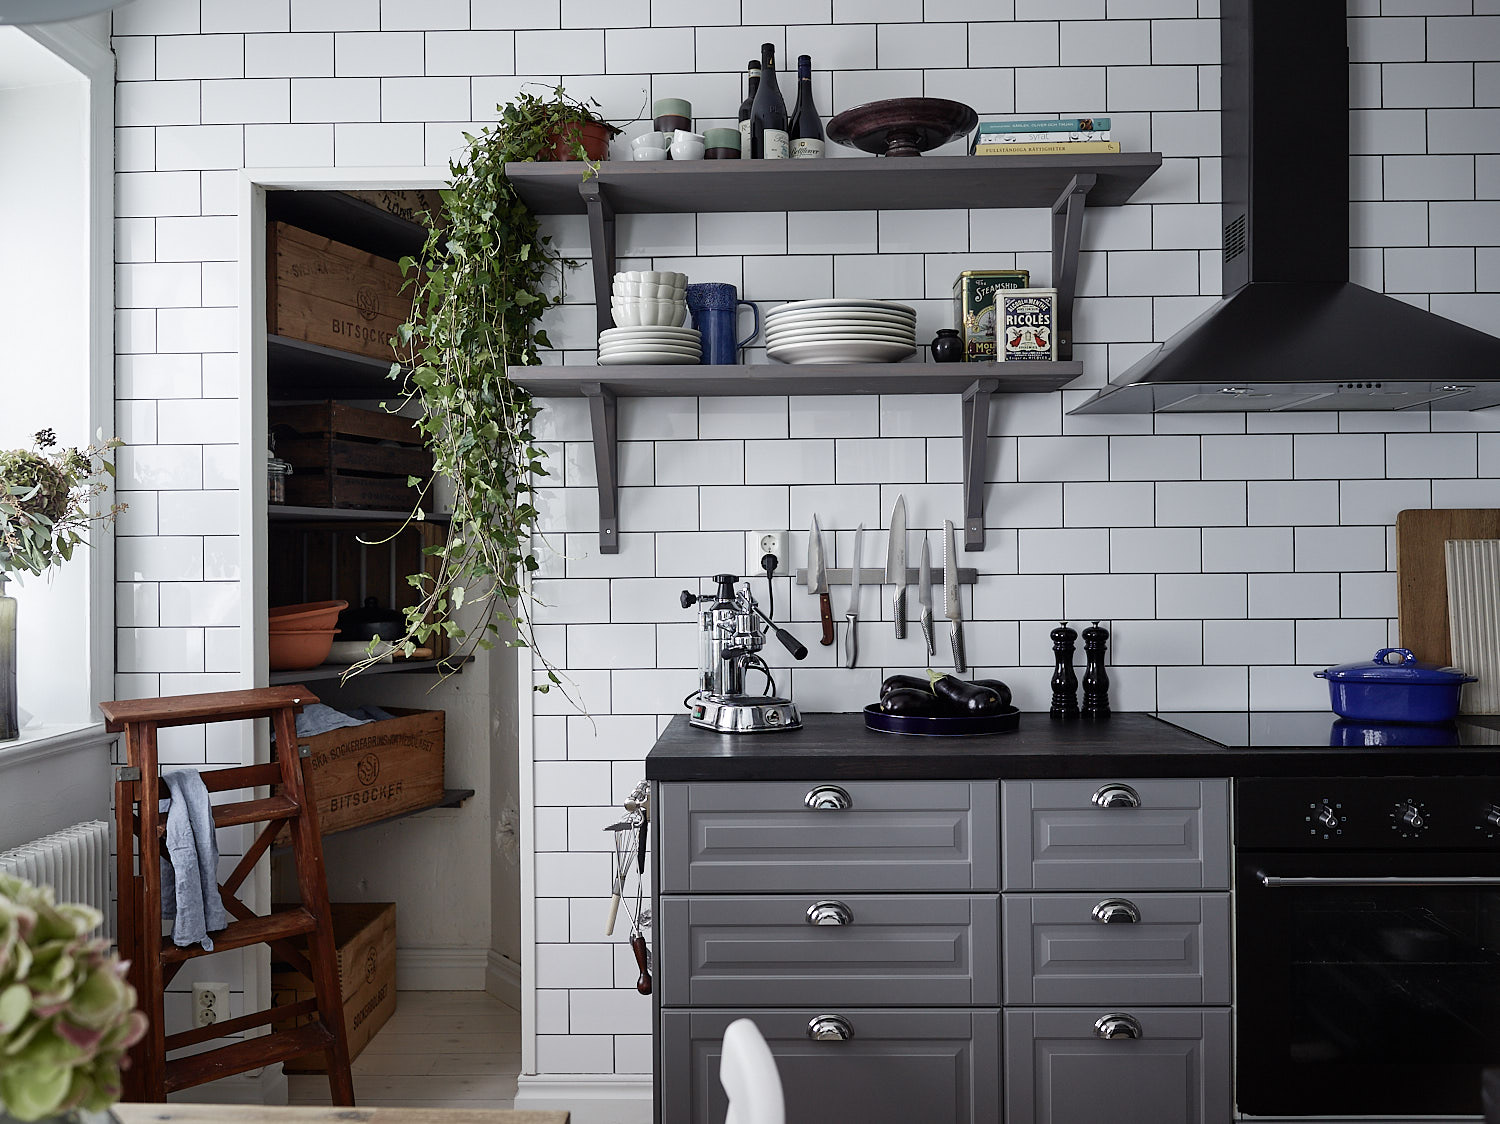 Imaginecozy Staging A Kitchen: Grey Kitchen With A Tile Wall